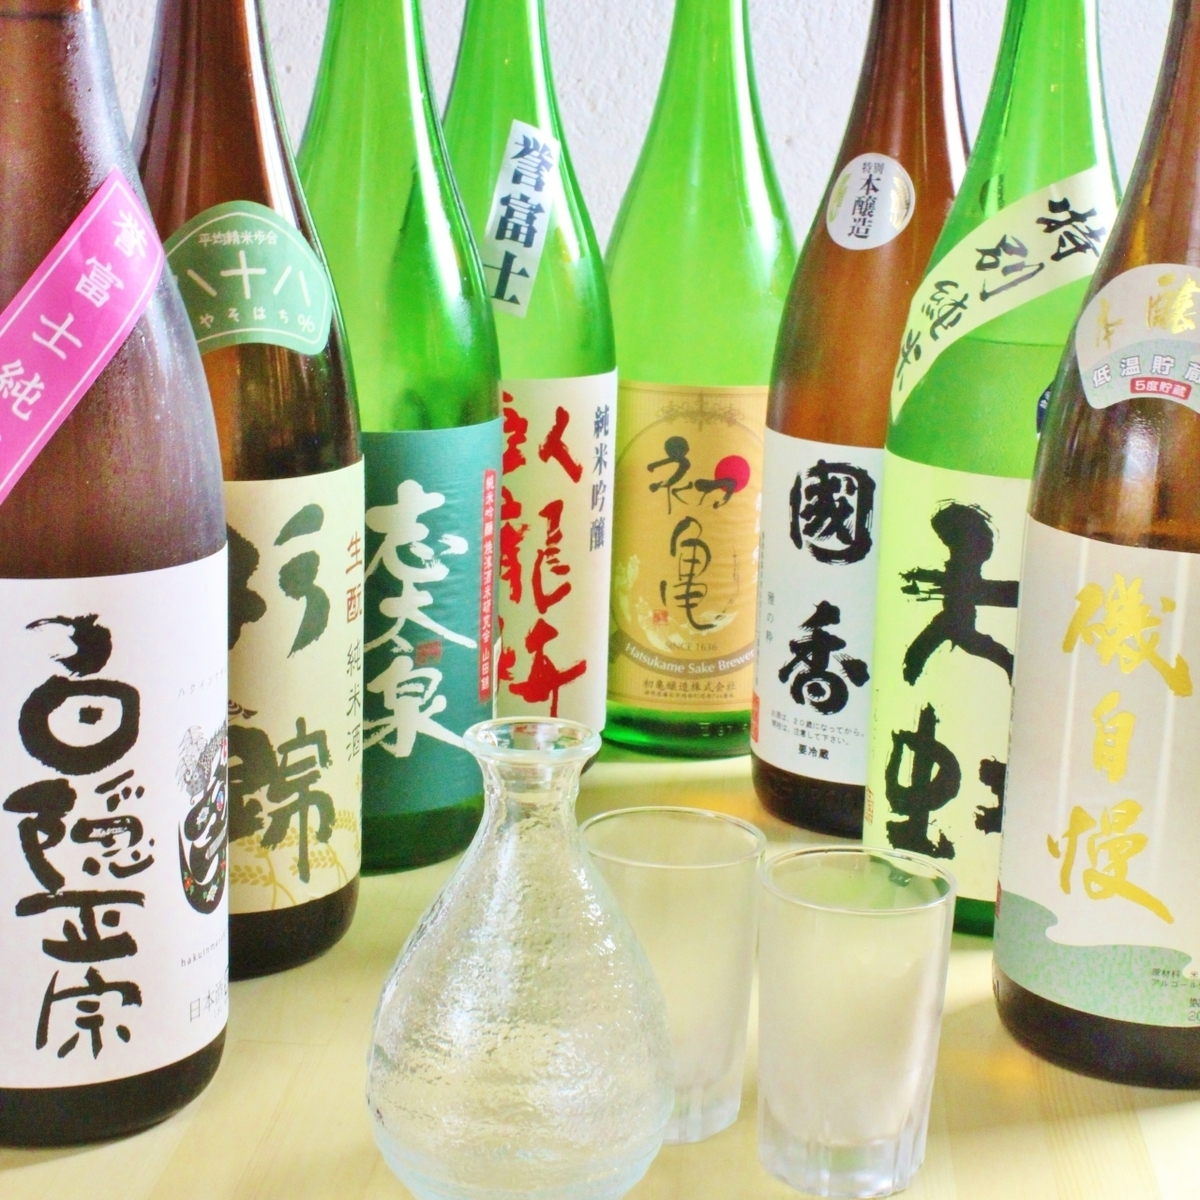 【About 15 kinds of local sake in Shizuoka】 Please leave sake.